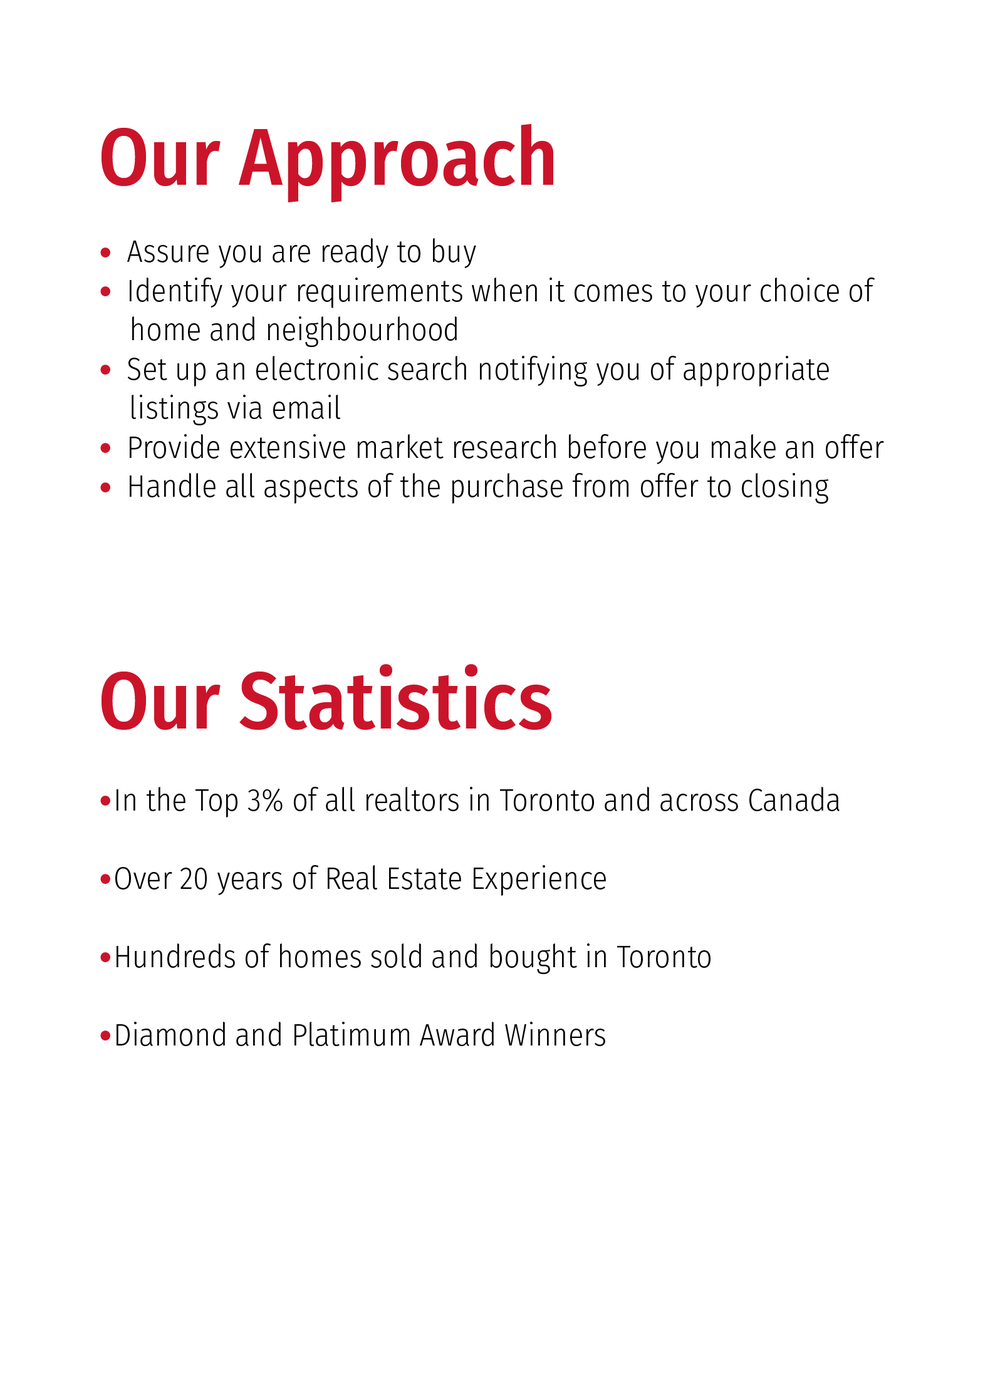 Tobia_Homes_Presentation-Digital_Download-BUYERS-0618_Our Approach_Our Approach.png